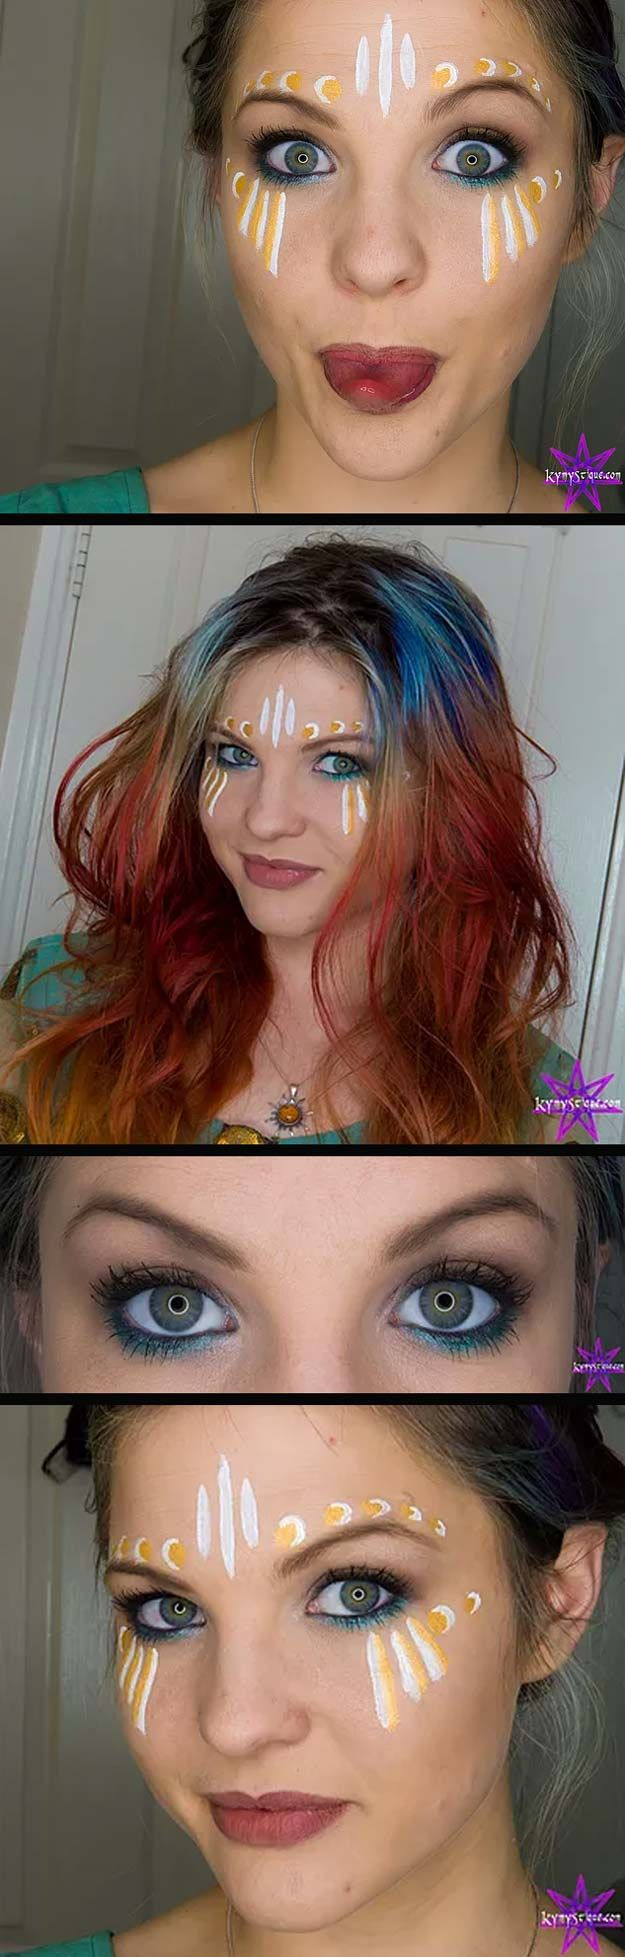 Festival Makeup Tutorials - Festival Makeup Tutorial - Awesome Glitter and Rhinestone Make Up Ideas for the Next Rave or Summer Music Festival - Awesome Tribal and Bohemian Looks For Summer Plus a Great Gold Boho Tutorial for the Next EDM Show - thegoddess.com/festival-makeup-tutorials